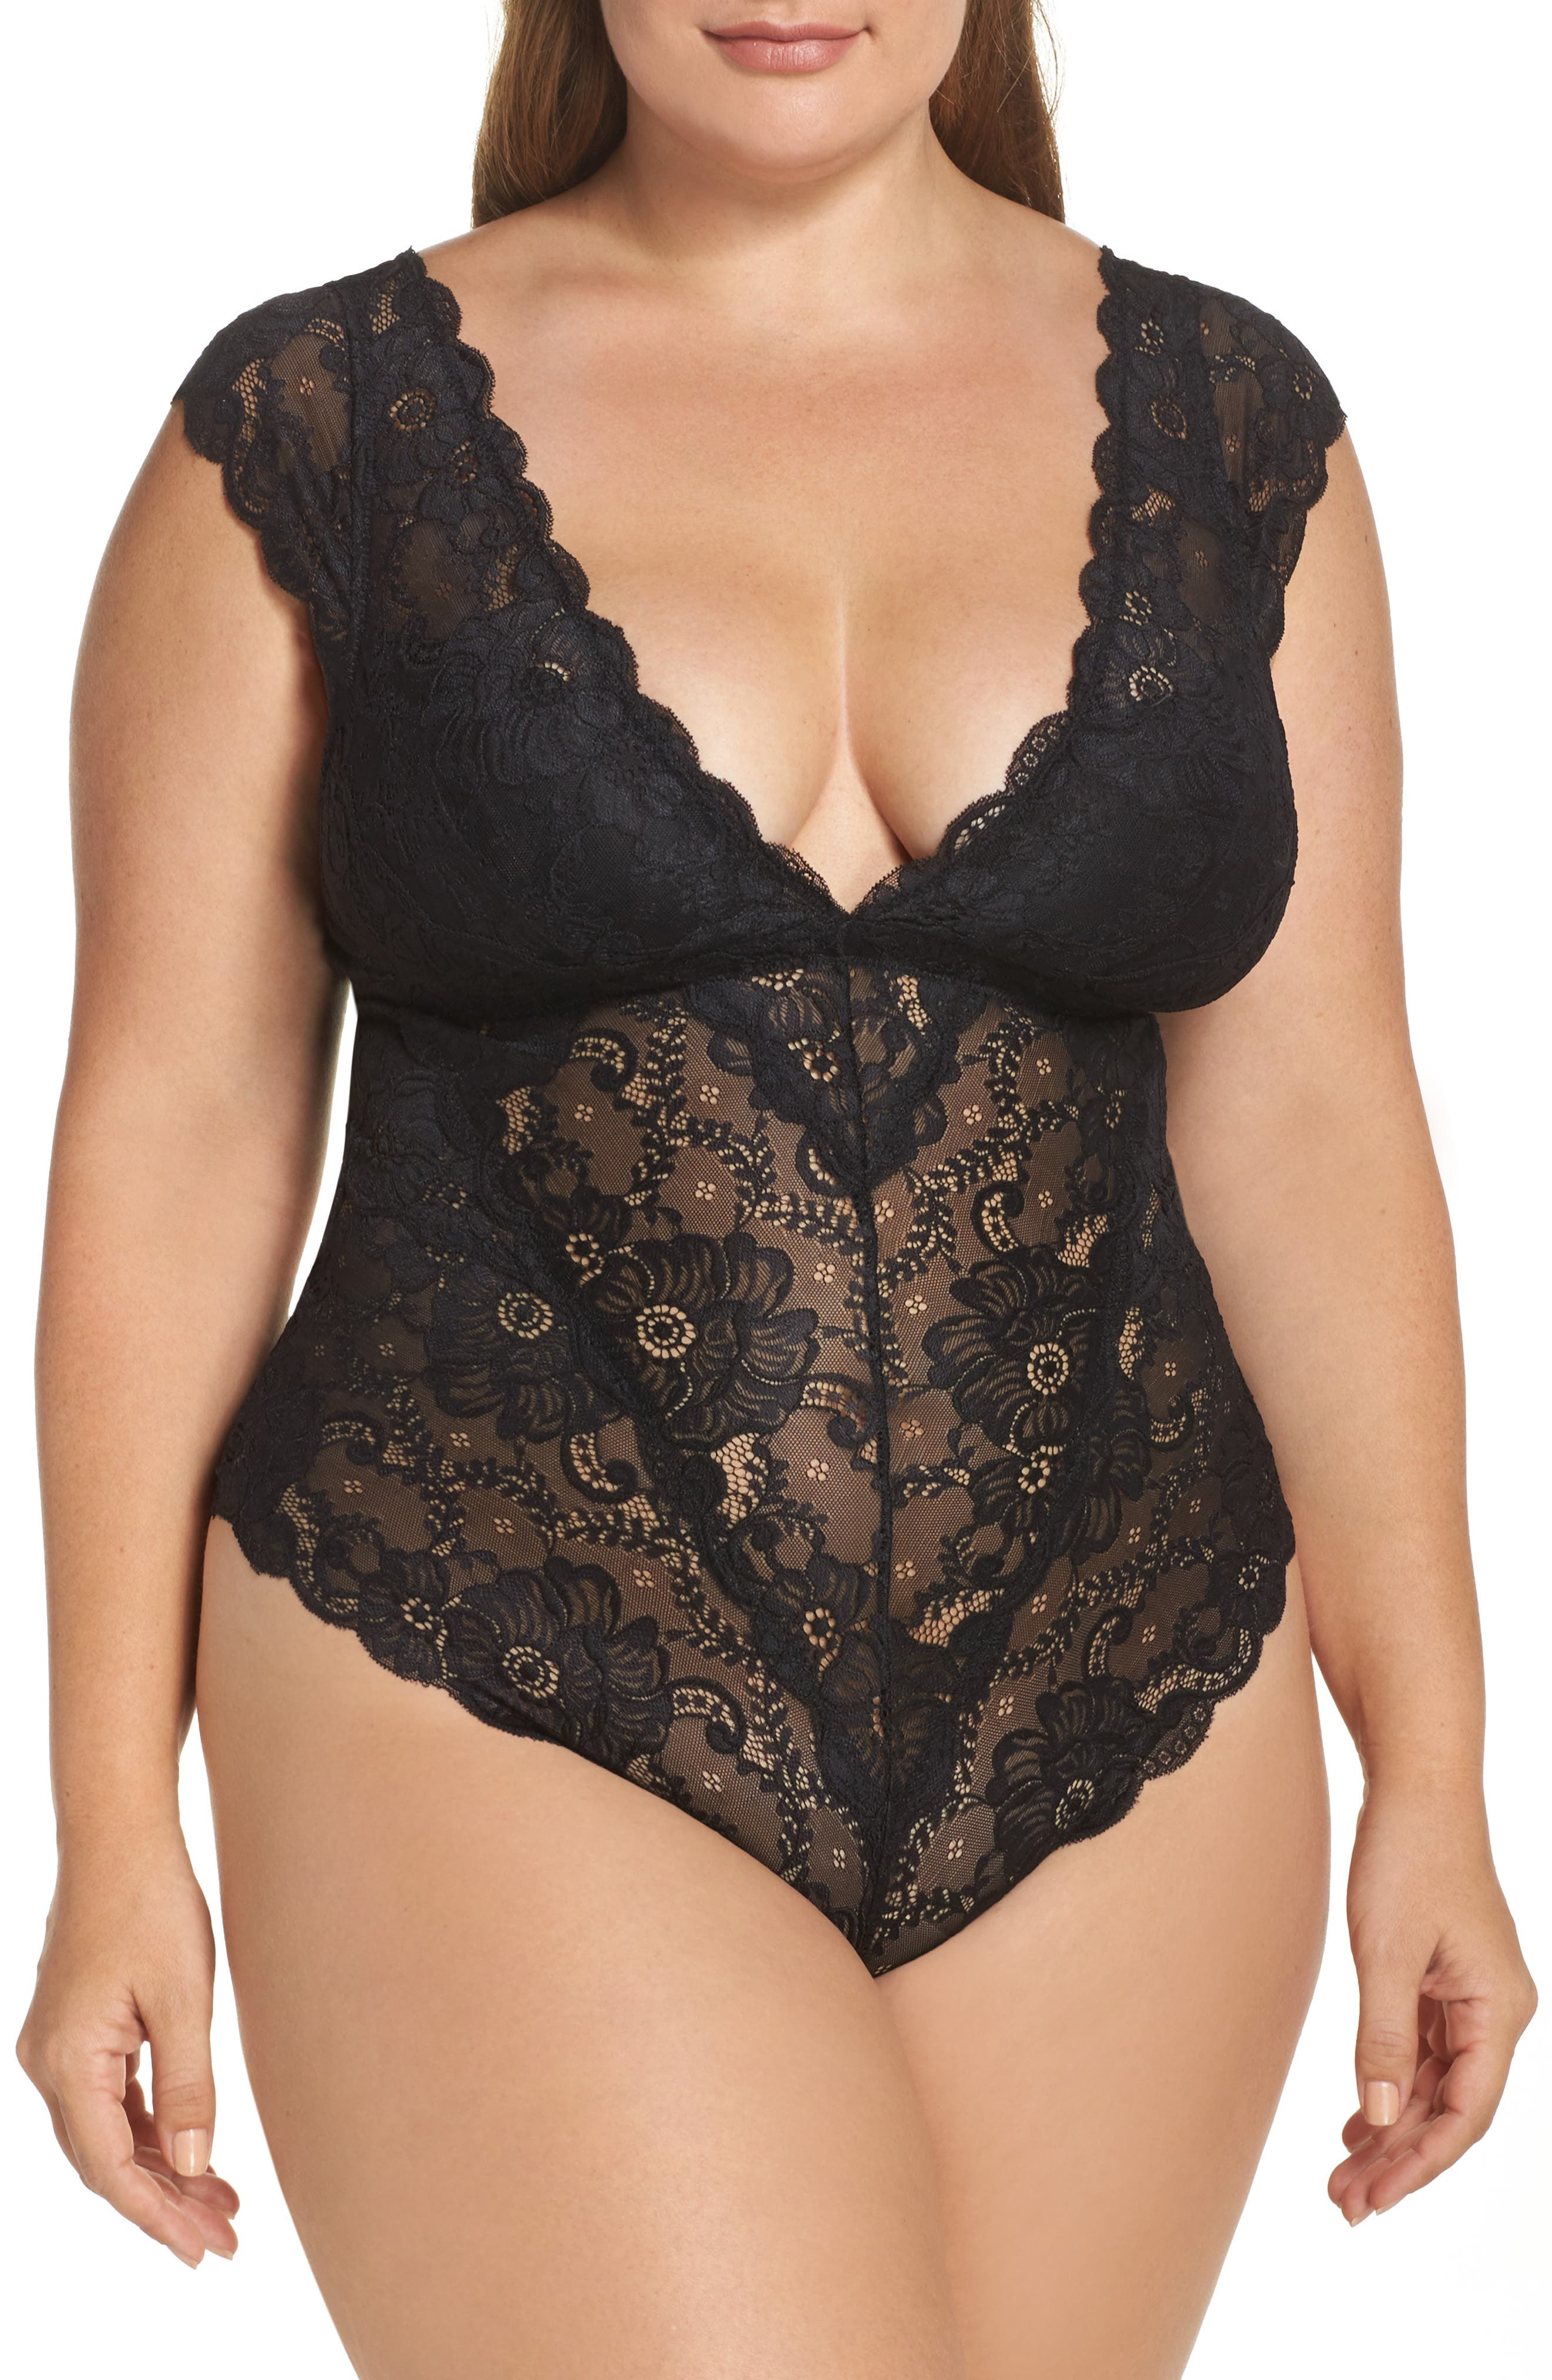 Suzette Lace Teddy,                             Main thumbnail 1, color,                             Black